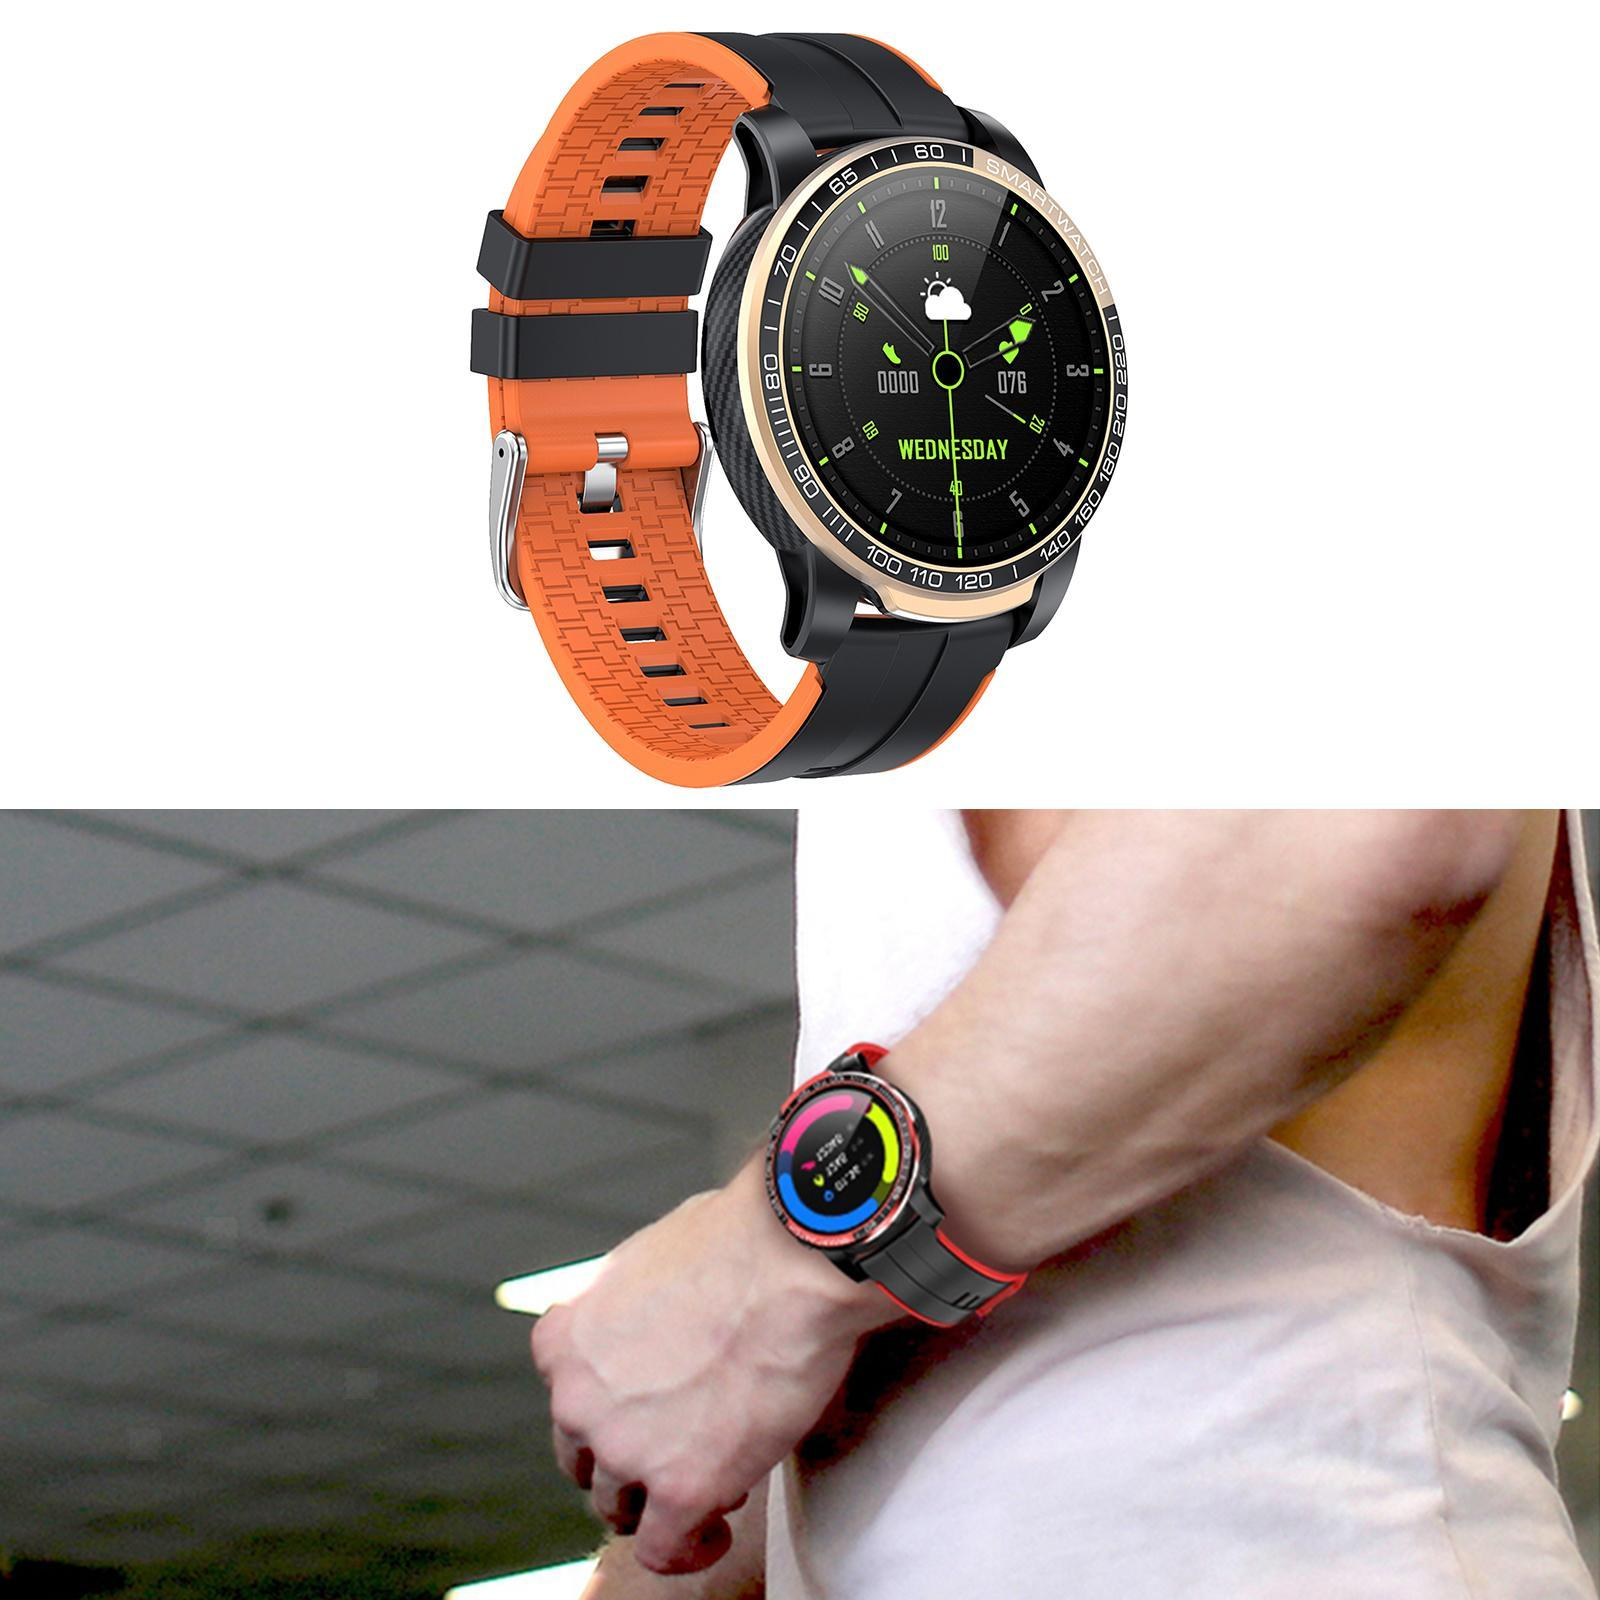 Hommes-Smart-Watch-Bluetooth-Call-Fitness-Tracker-frequence-cardiaque-sommeil miniature 18